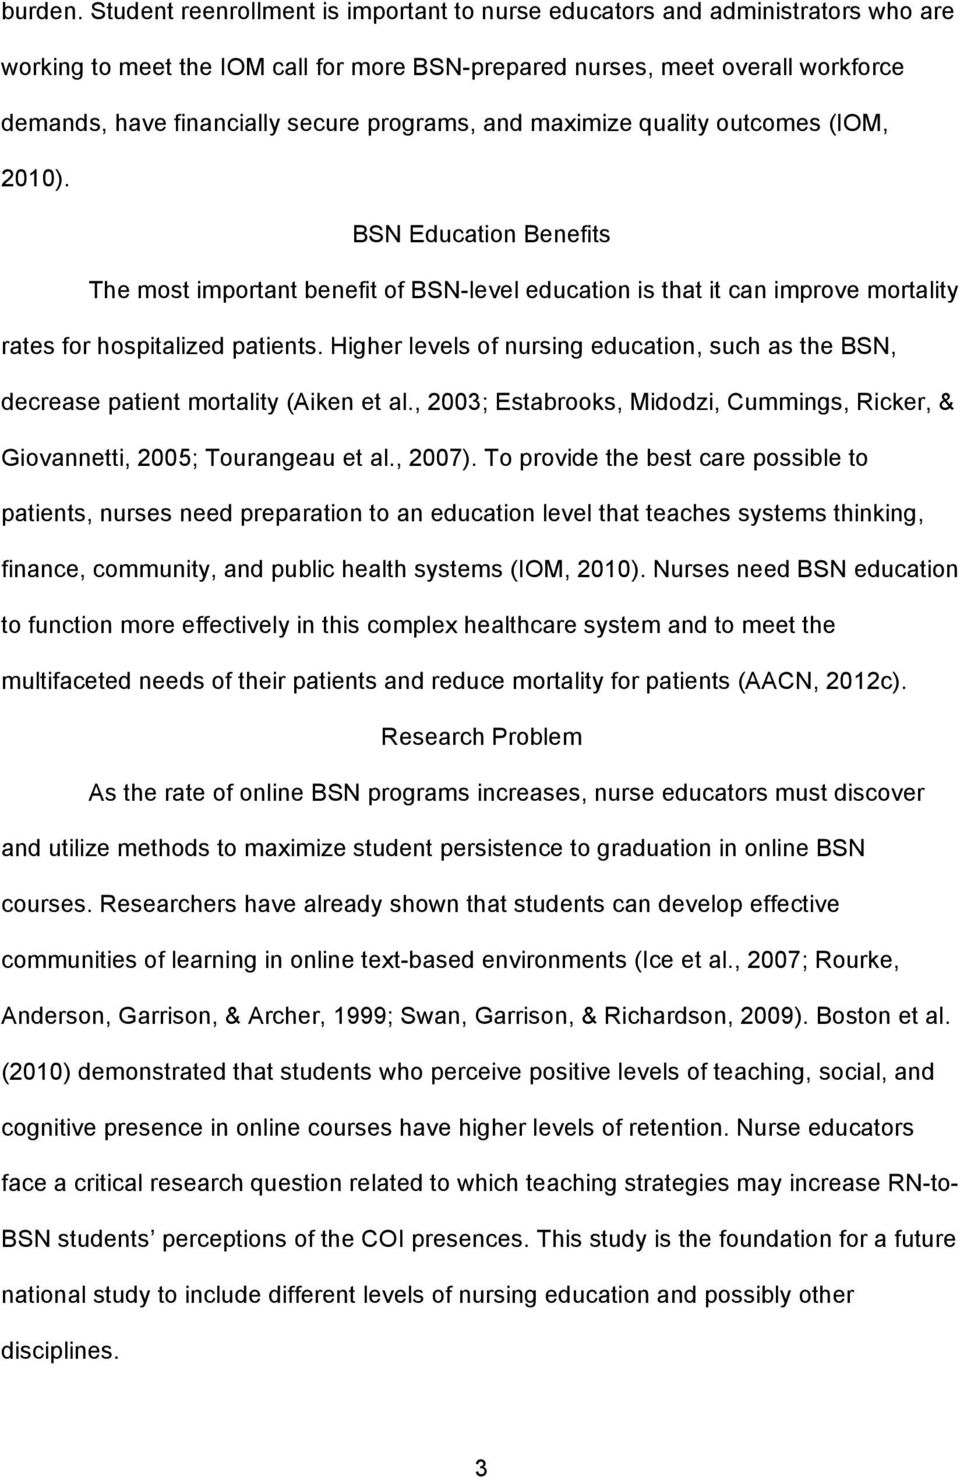 programs, and maximize quality outcomes (IOM, 2010). BSN Education Benefits The most important benefit of BSN-level education is that it can improve mortality rates for hospitalized patients.